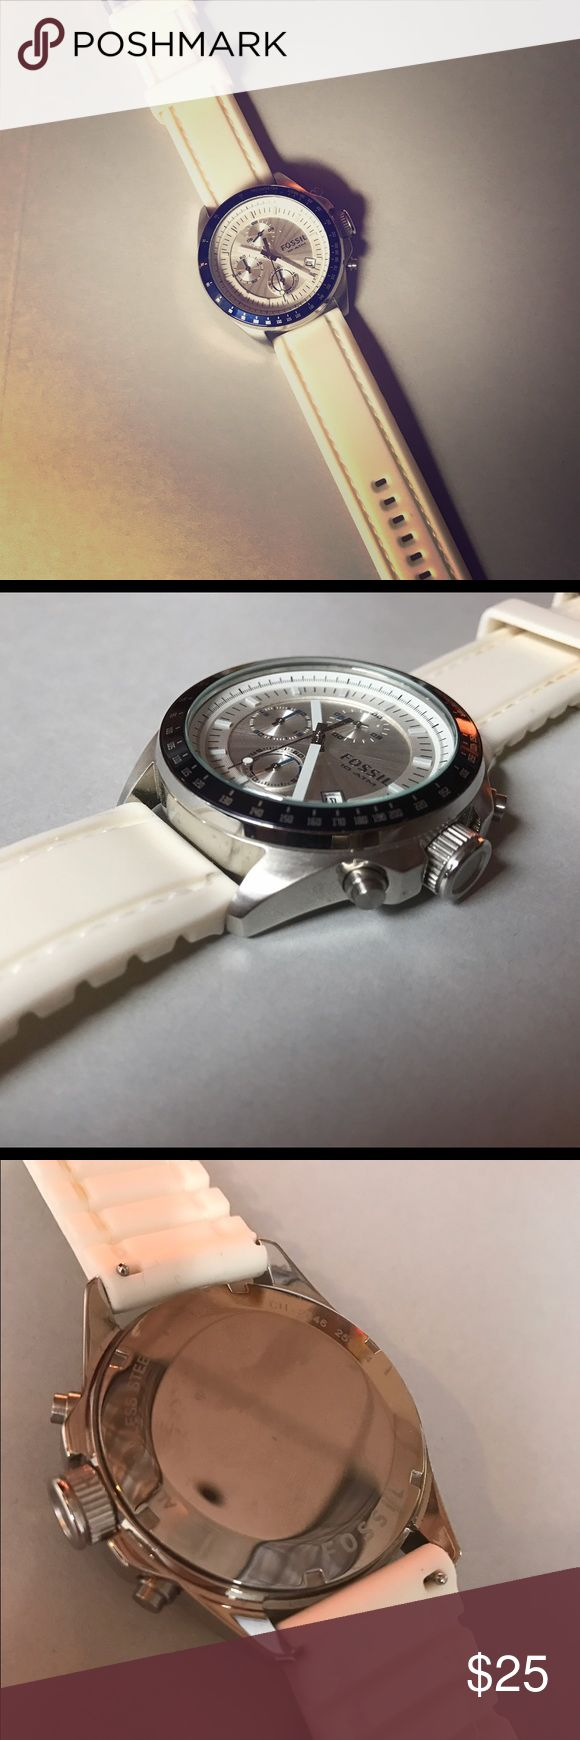 Men's Fossil Watch with Silicone Band NEEDS BATTERY REPLACEMENT! Men's Fossil Watch with white silicone band and circular stainless steel face. Light wear. Fossil Other